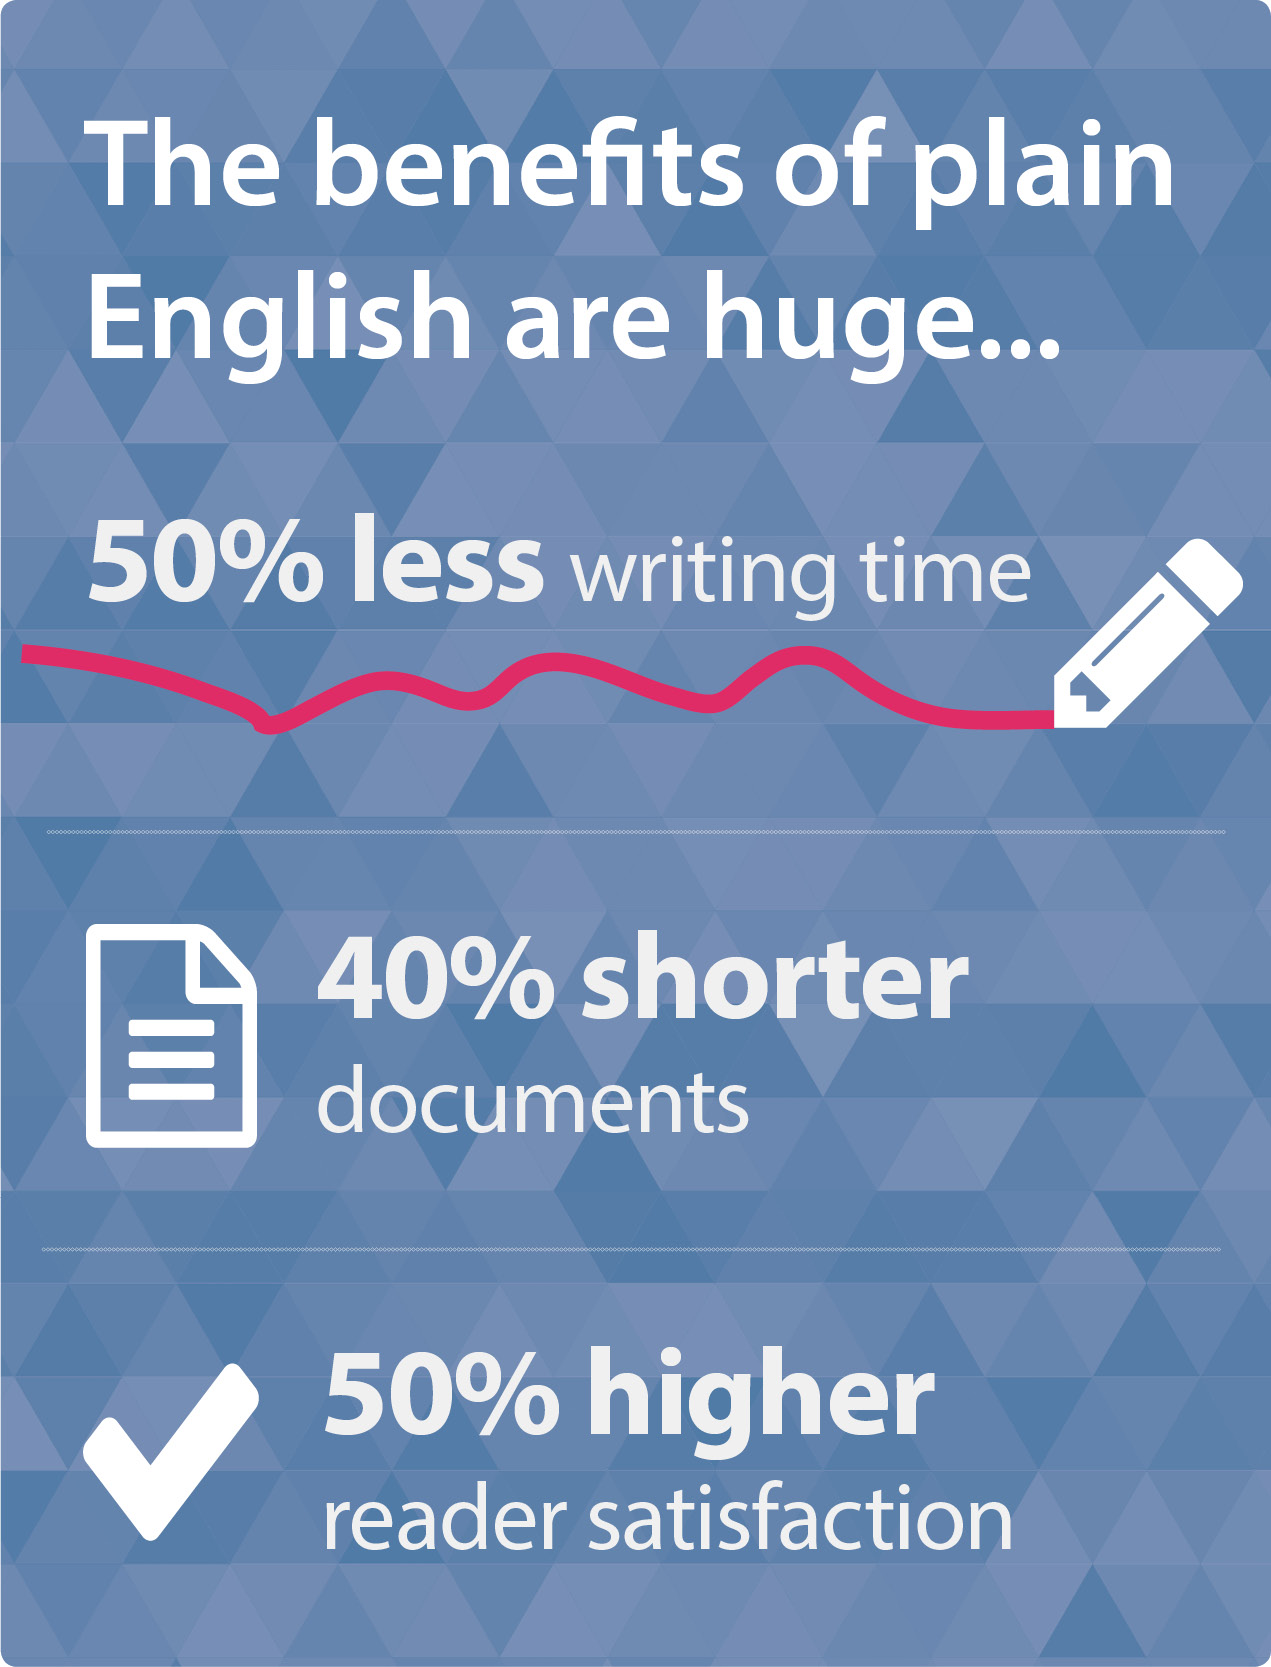 The benefits of plain English are huge